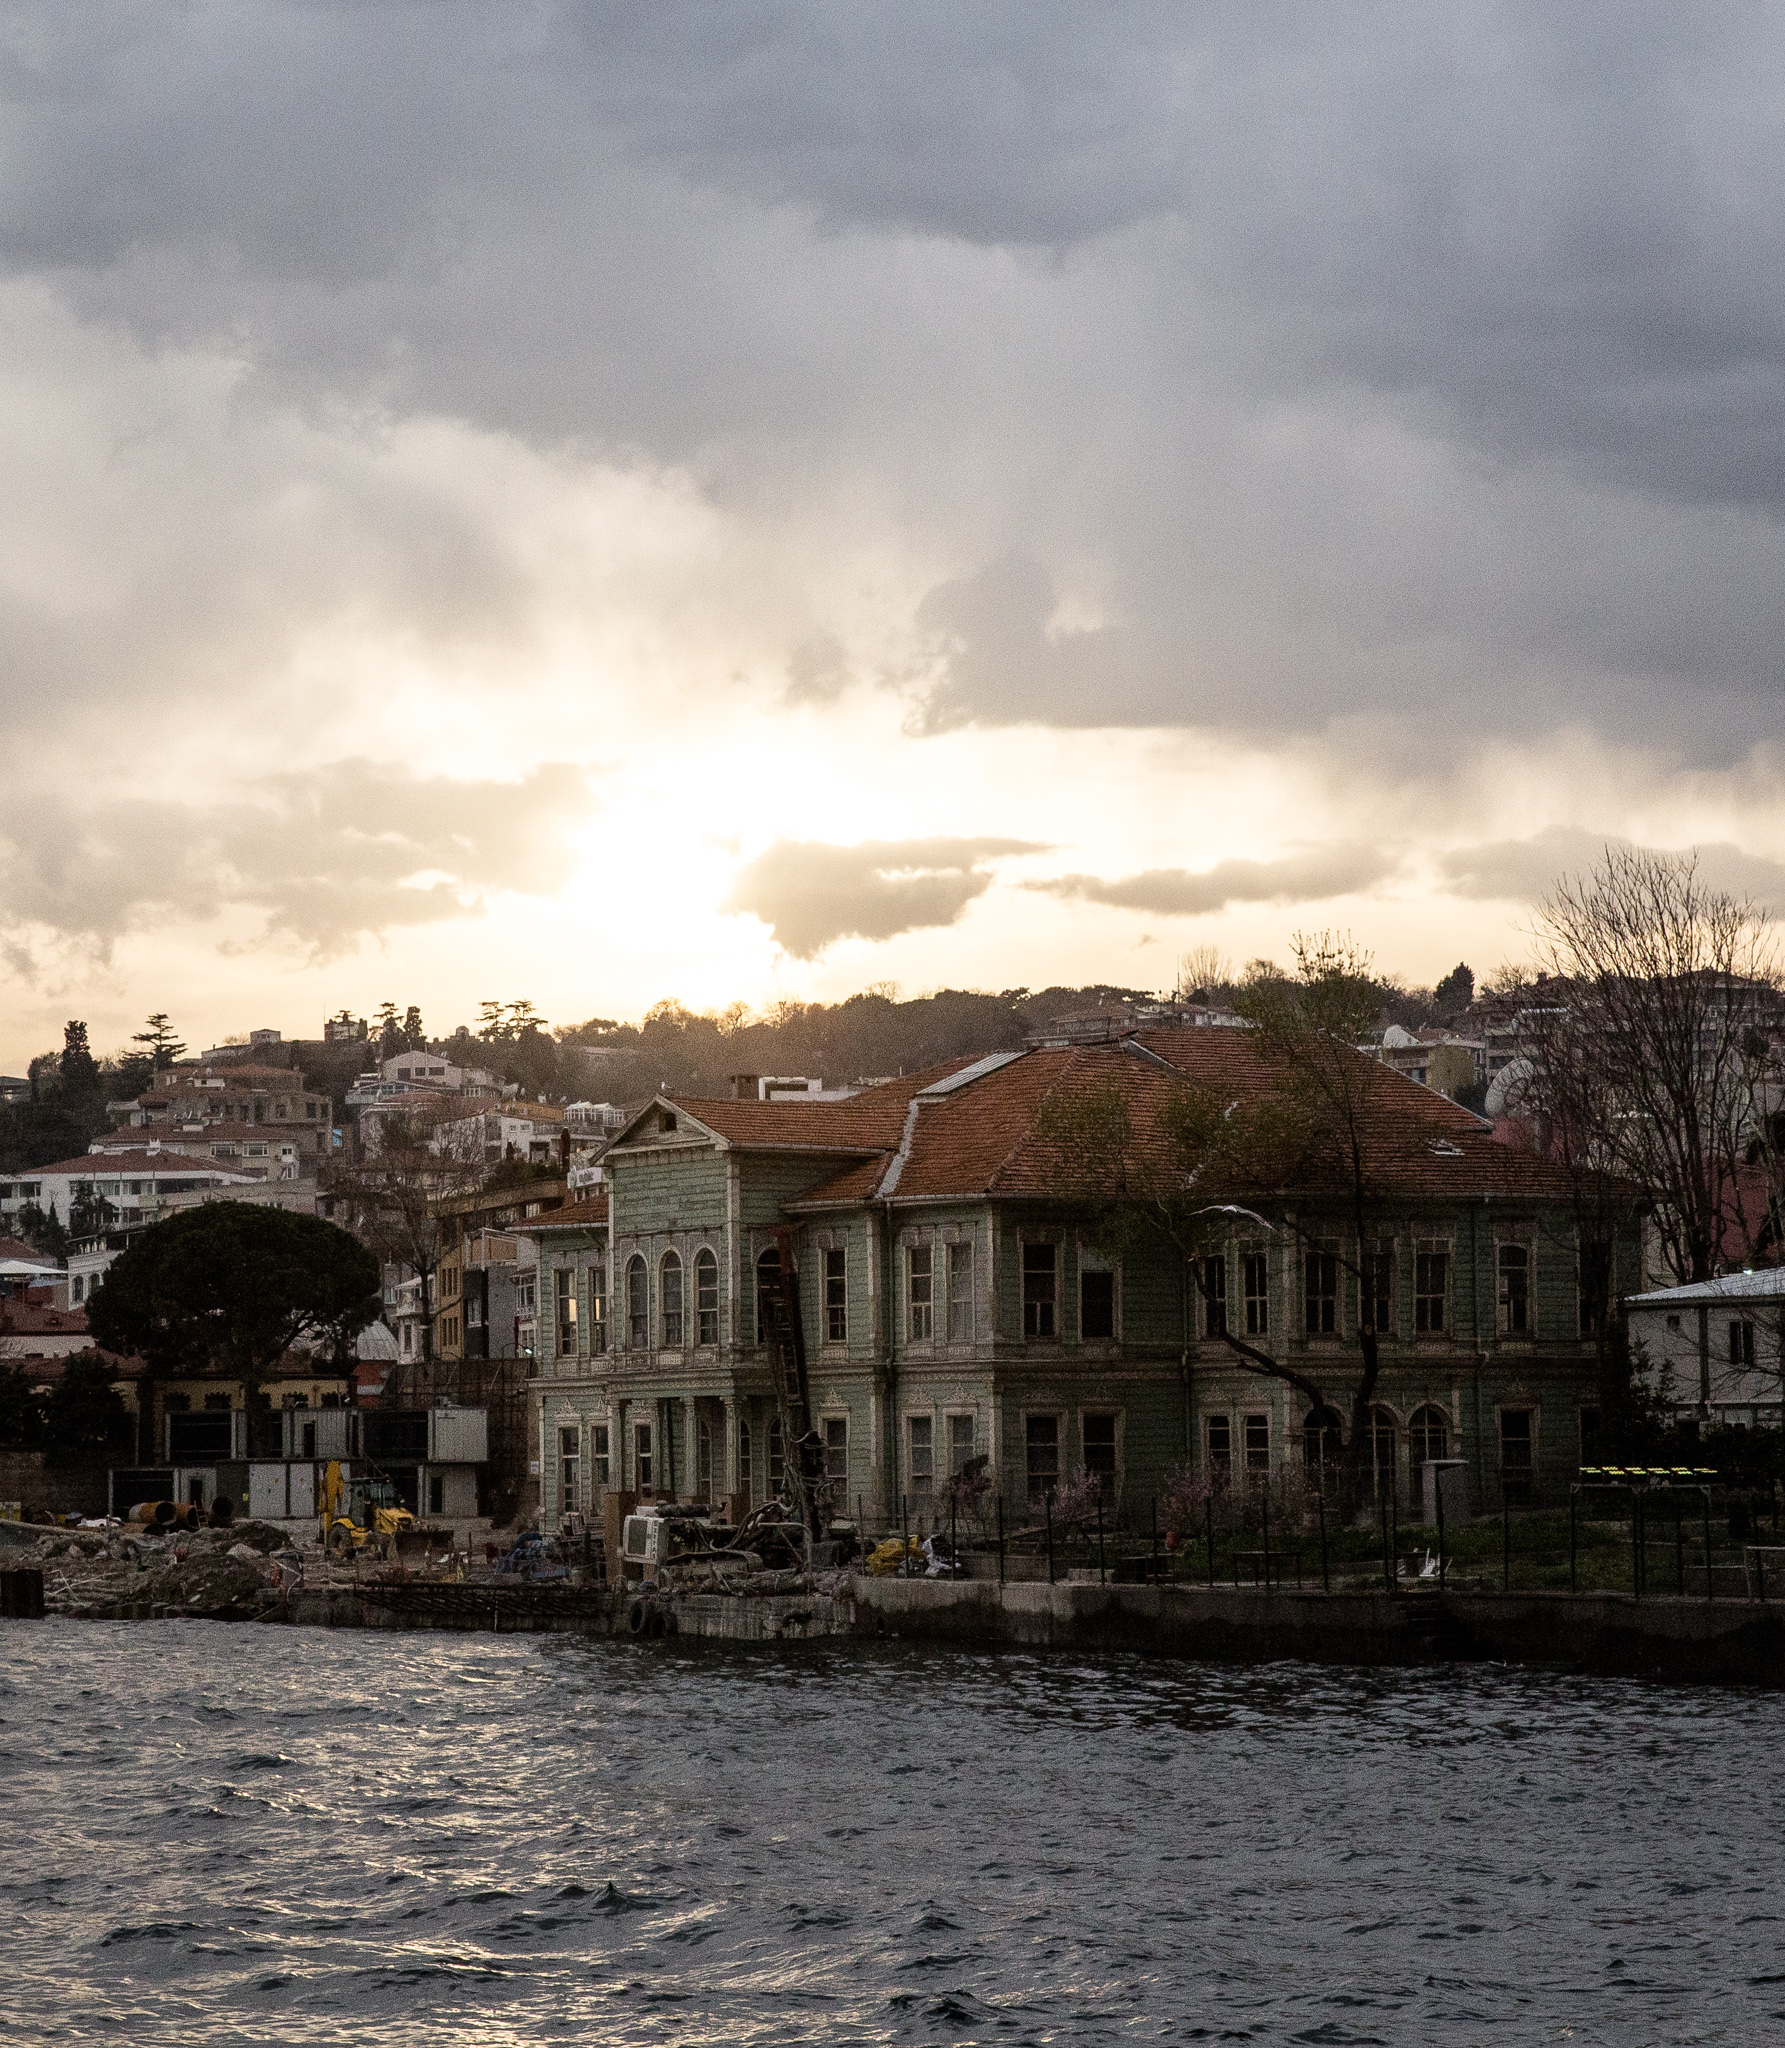 istanbul_bosphorus-boat-trip-1830-edit_sunset-over-green-wooden-building.jpg